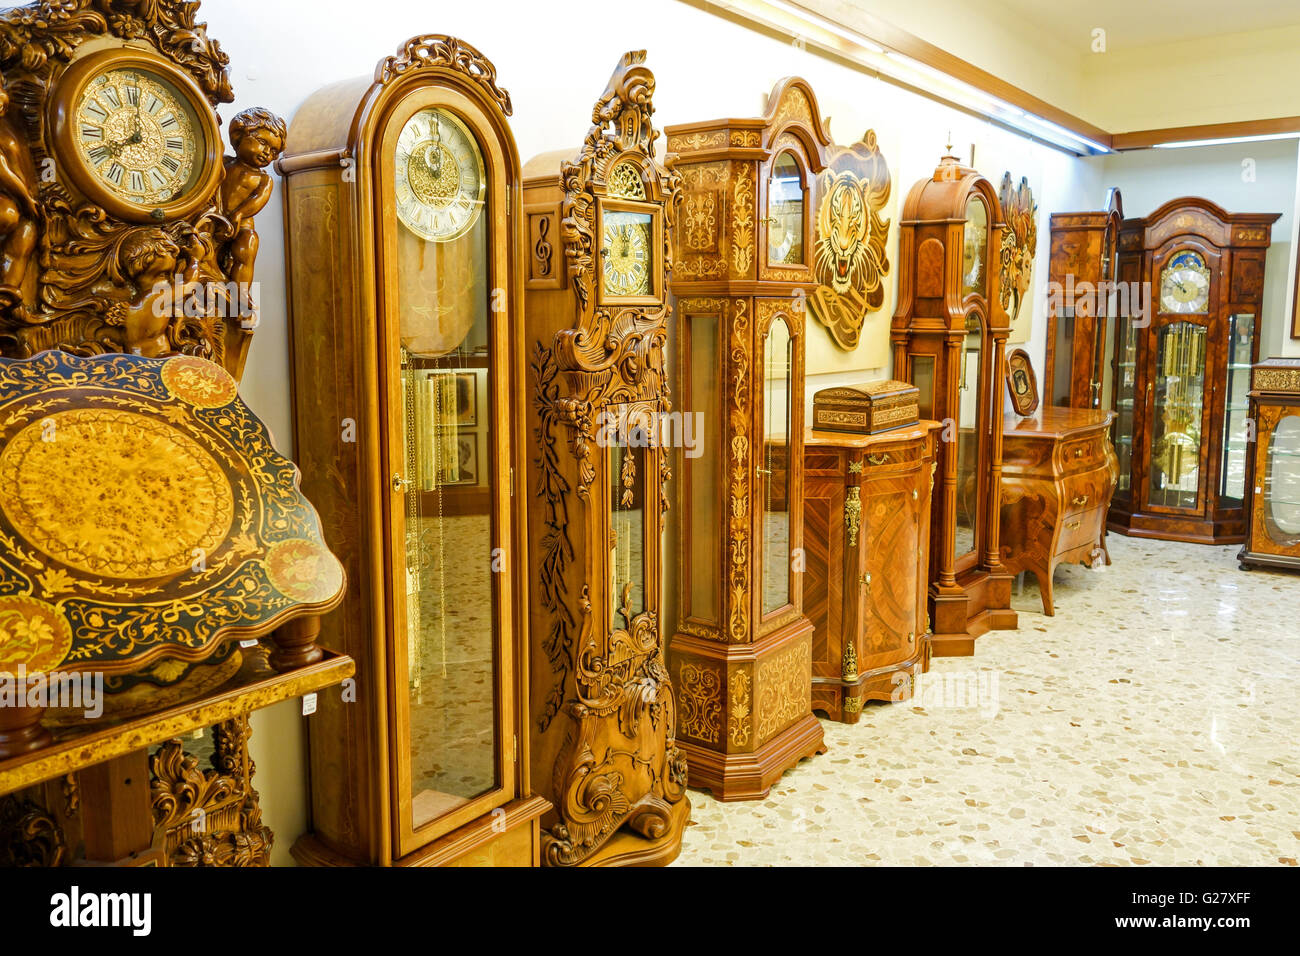 Ornate Wooden Inlaid Furniture Tables Clocks Etc For Sale In A Shop In  Sorrento Italy Europe